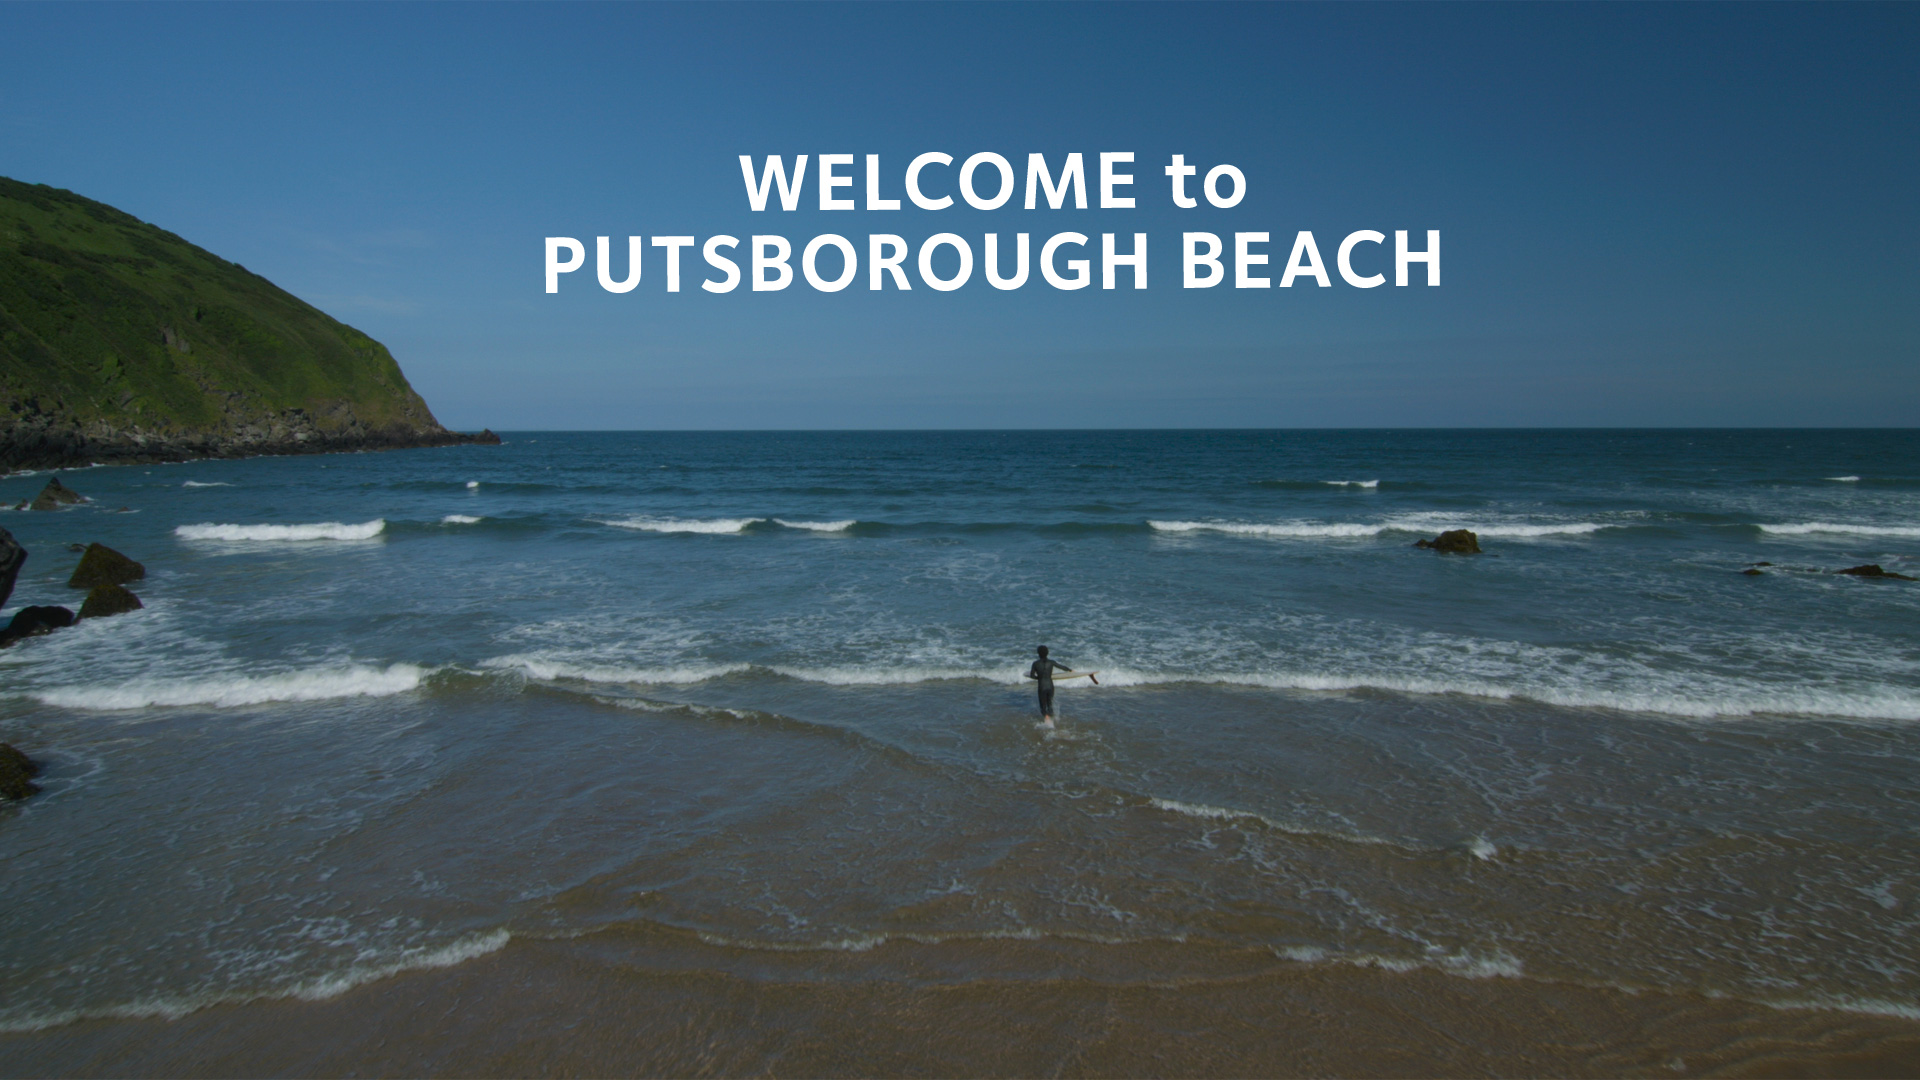 Putsborough Beach Cottages Caravan Parks & Cafe